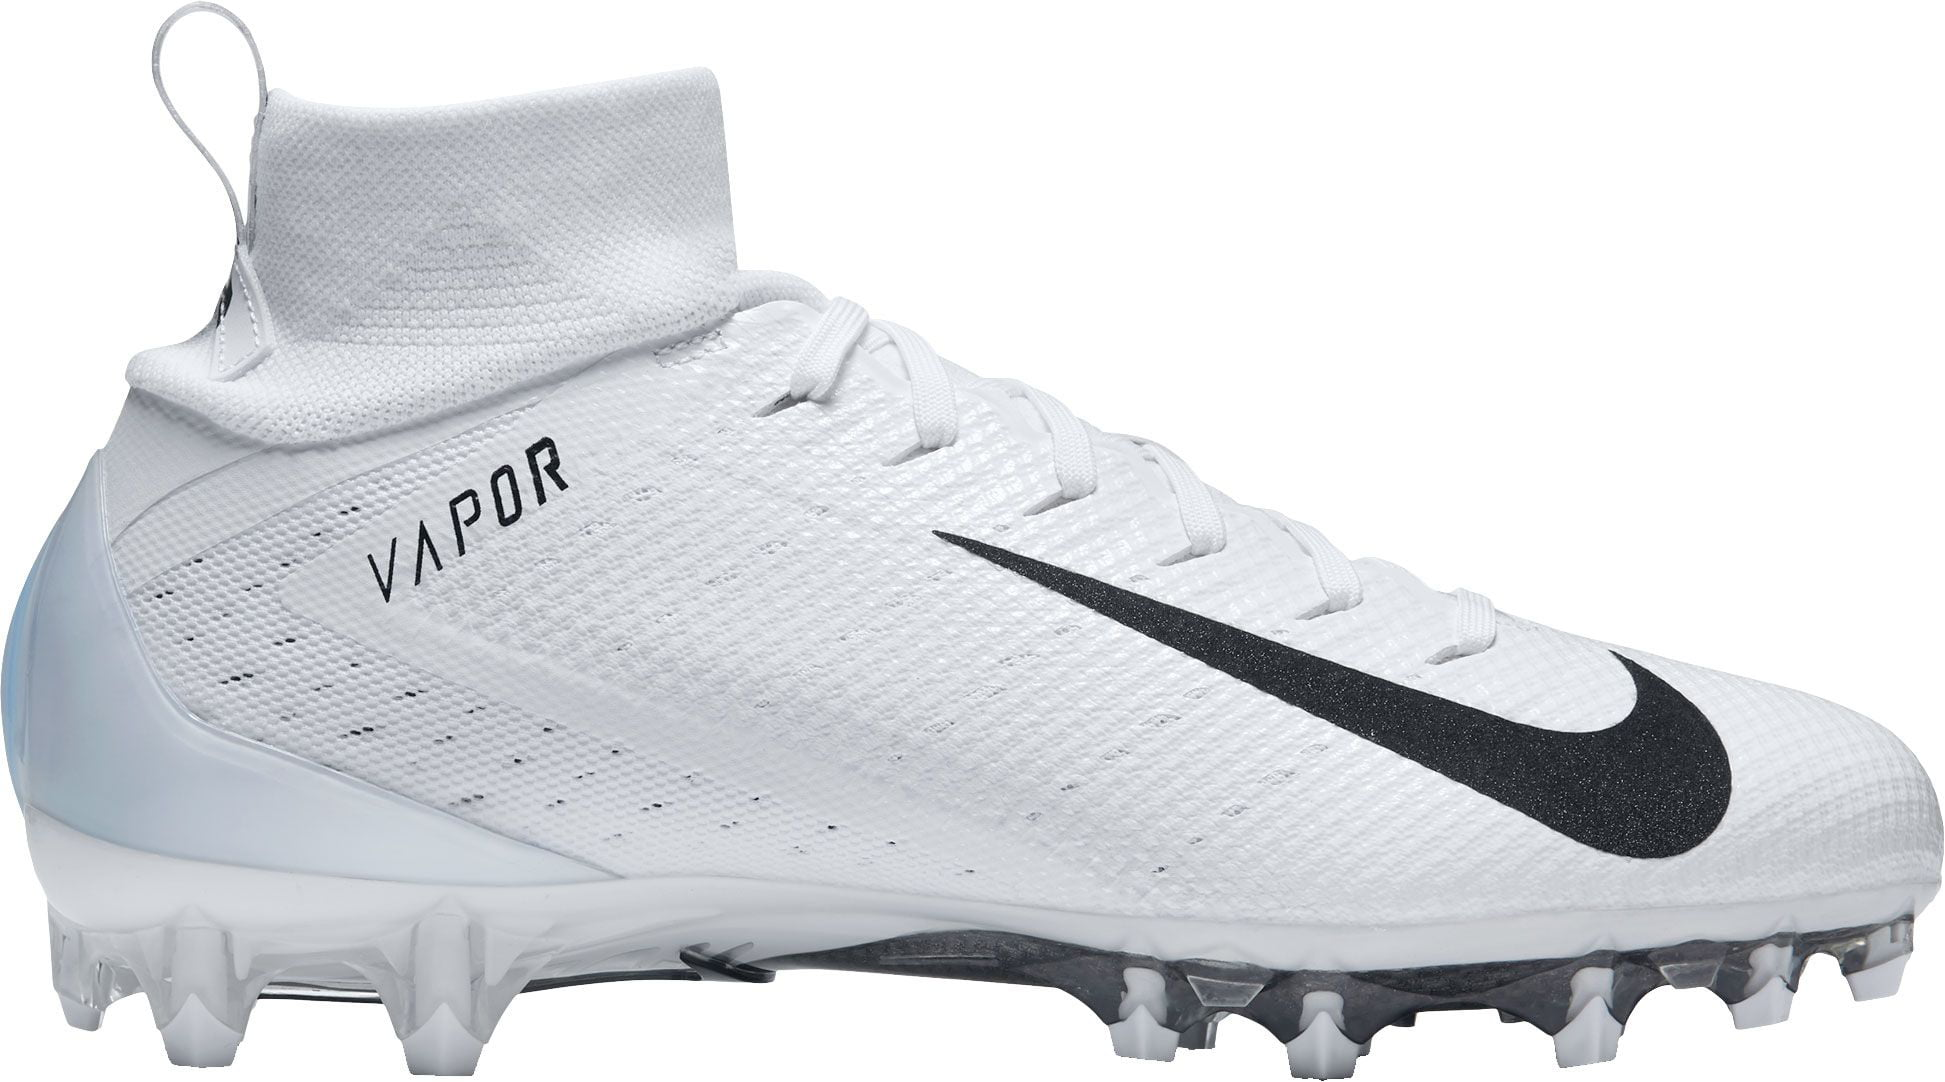 2c95754241b0 Nike Men's Vapor Untouchable 3 Pro Football Cleats White/Black 9 -  Walmart.com